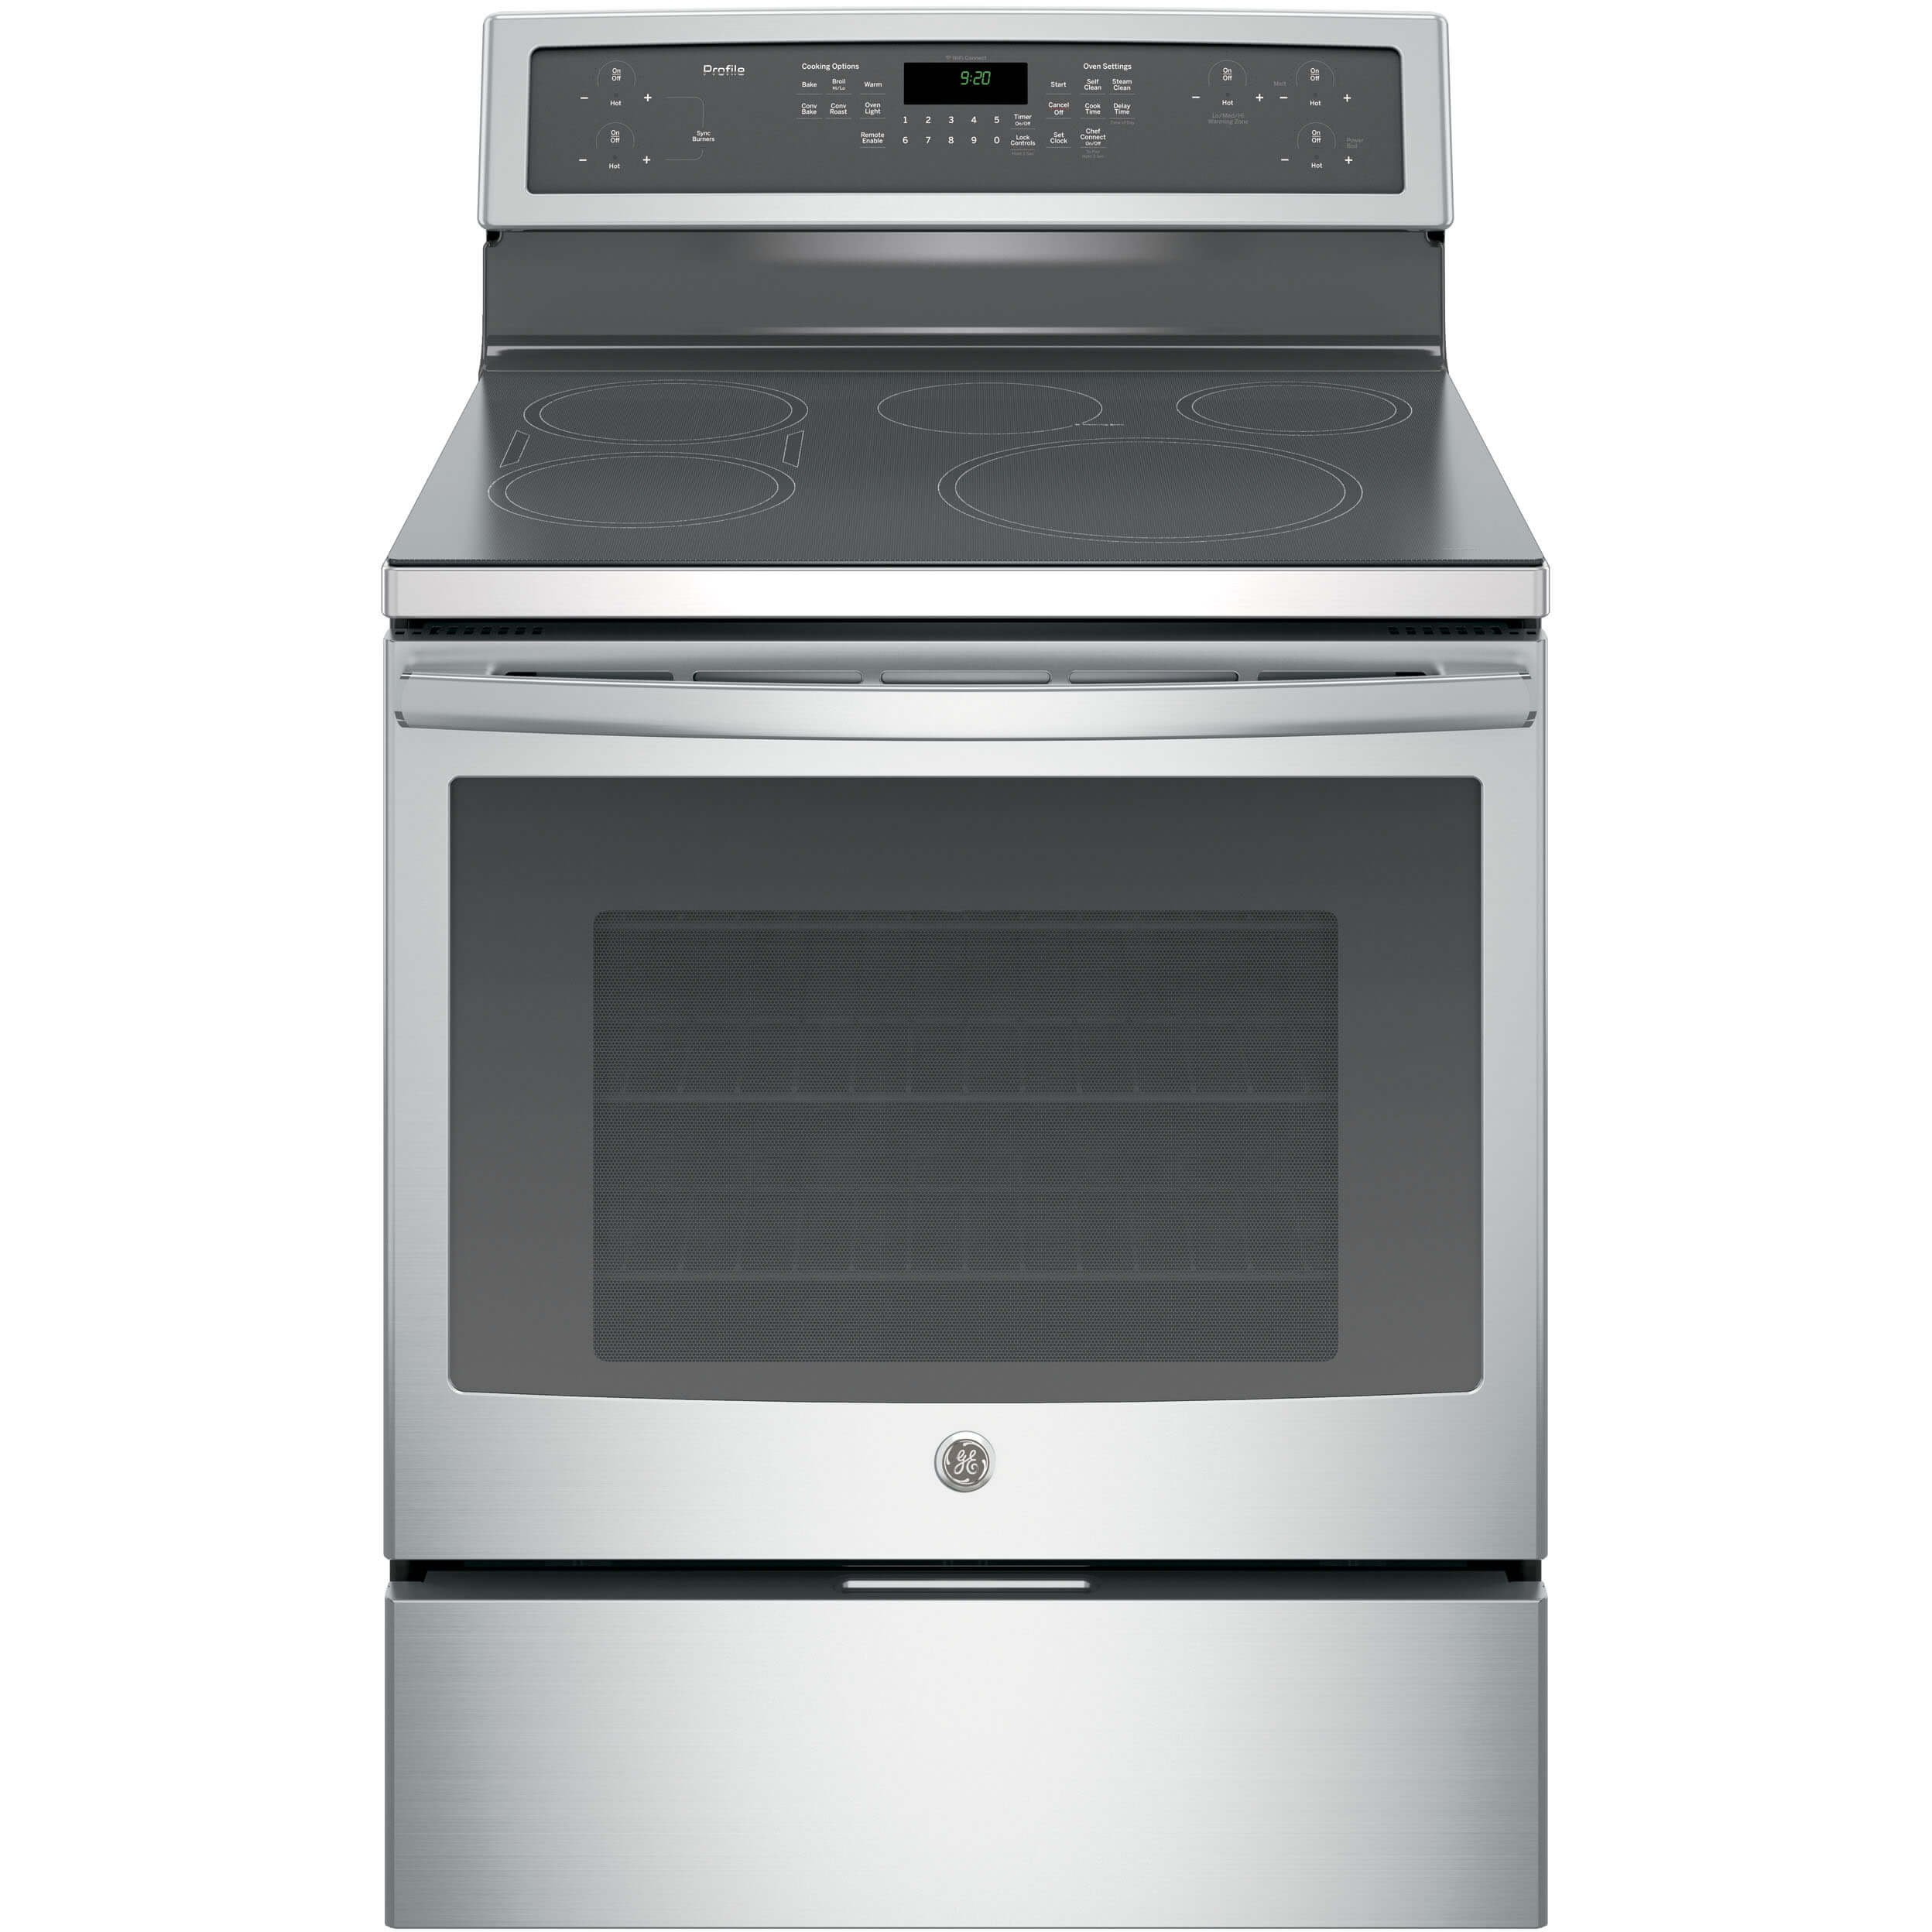 GE PHB920SJSS Stainless Steel Electric Induction Range product image